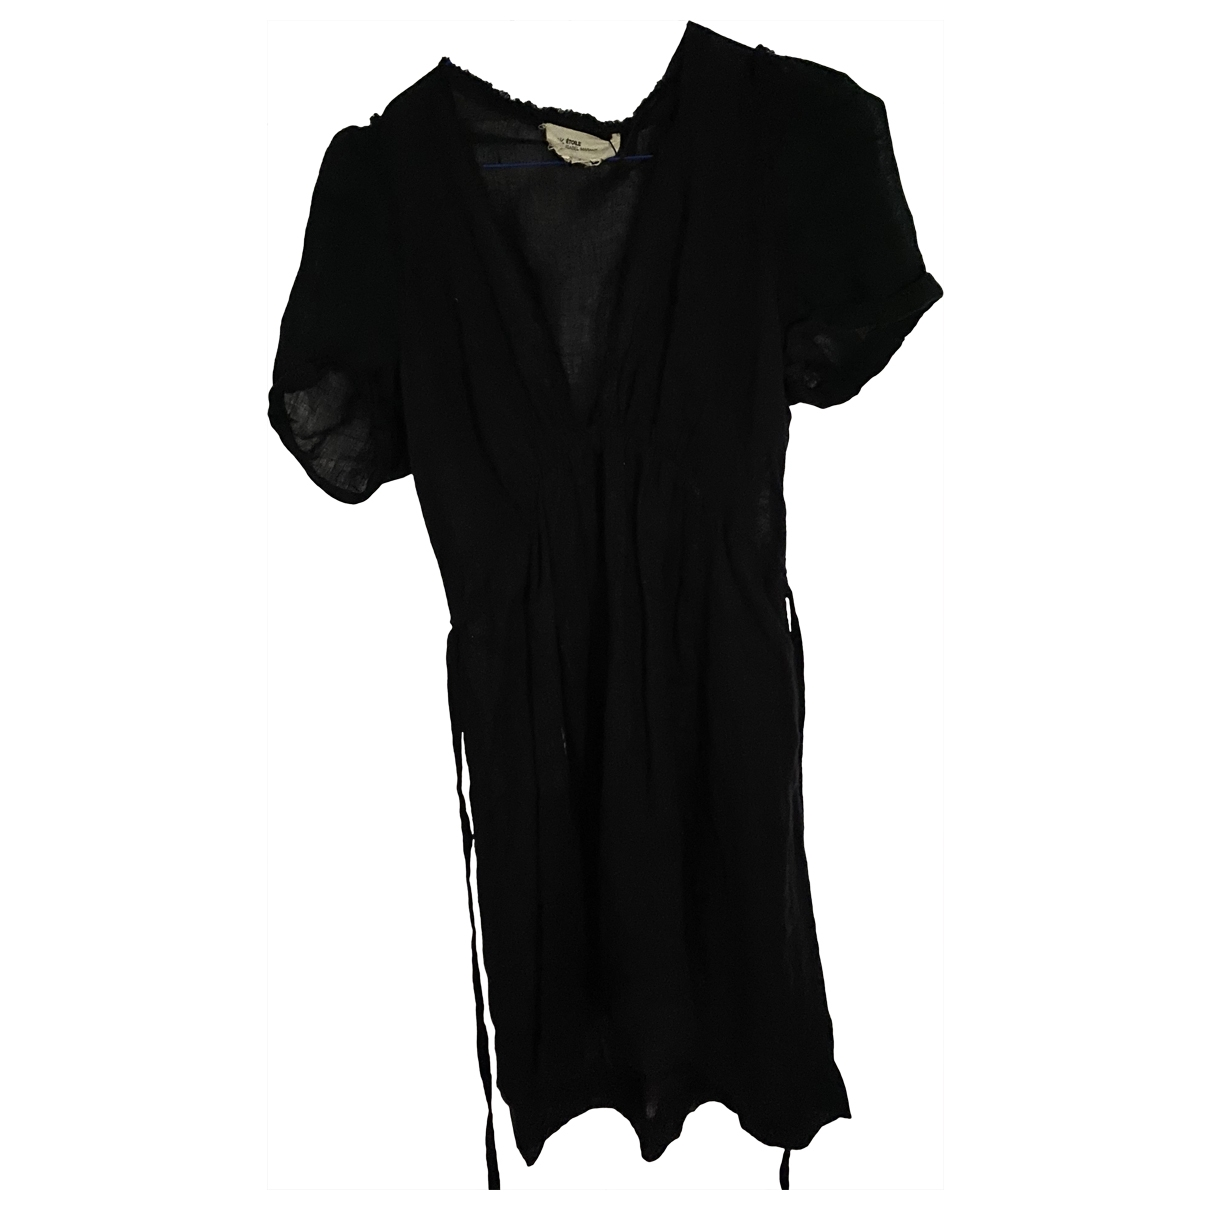 Isabel Marant Etoile \N Black Linen dress for Women 40 FR